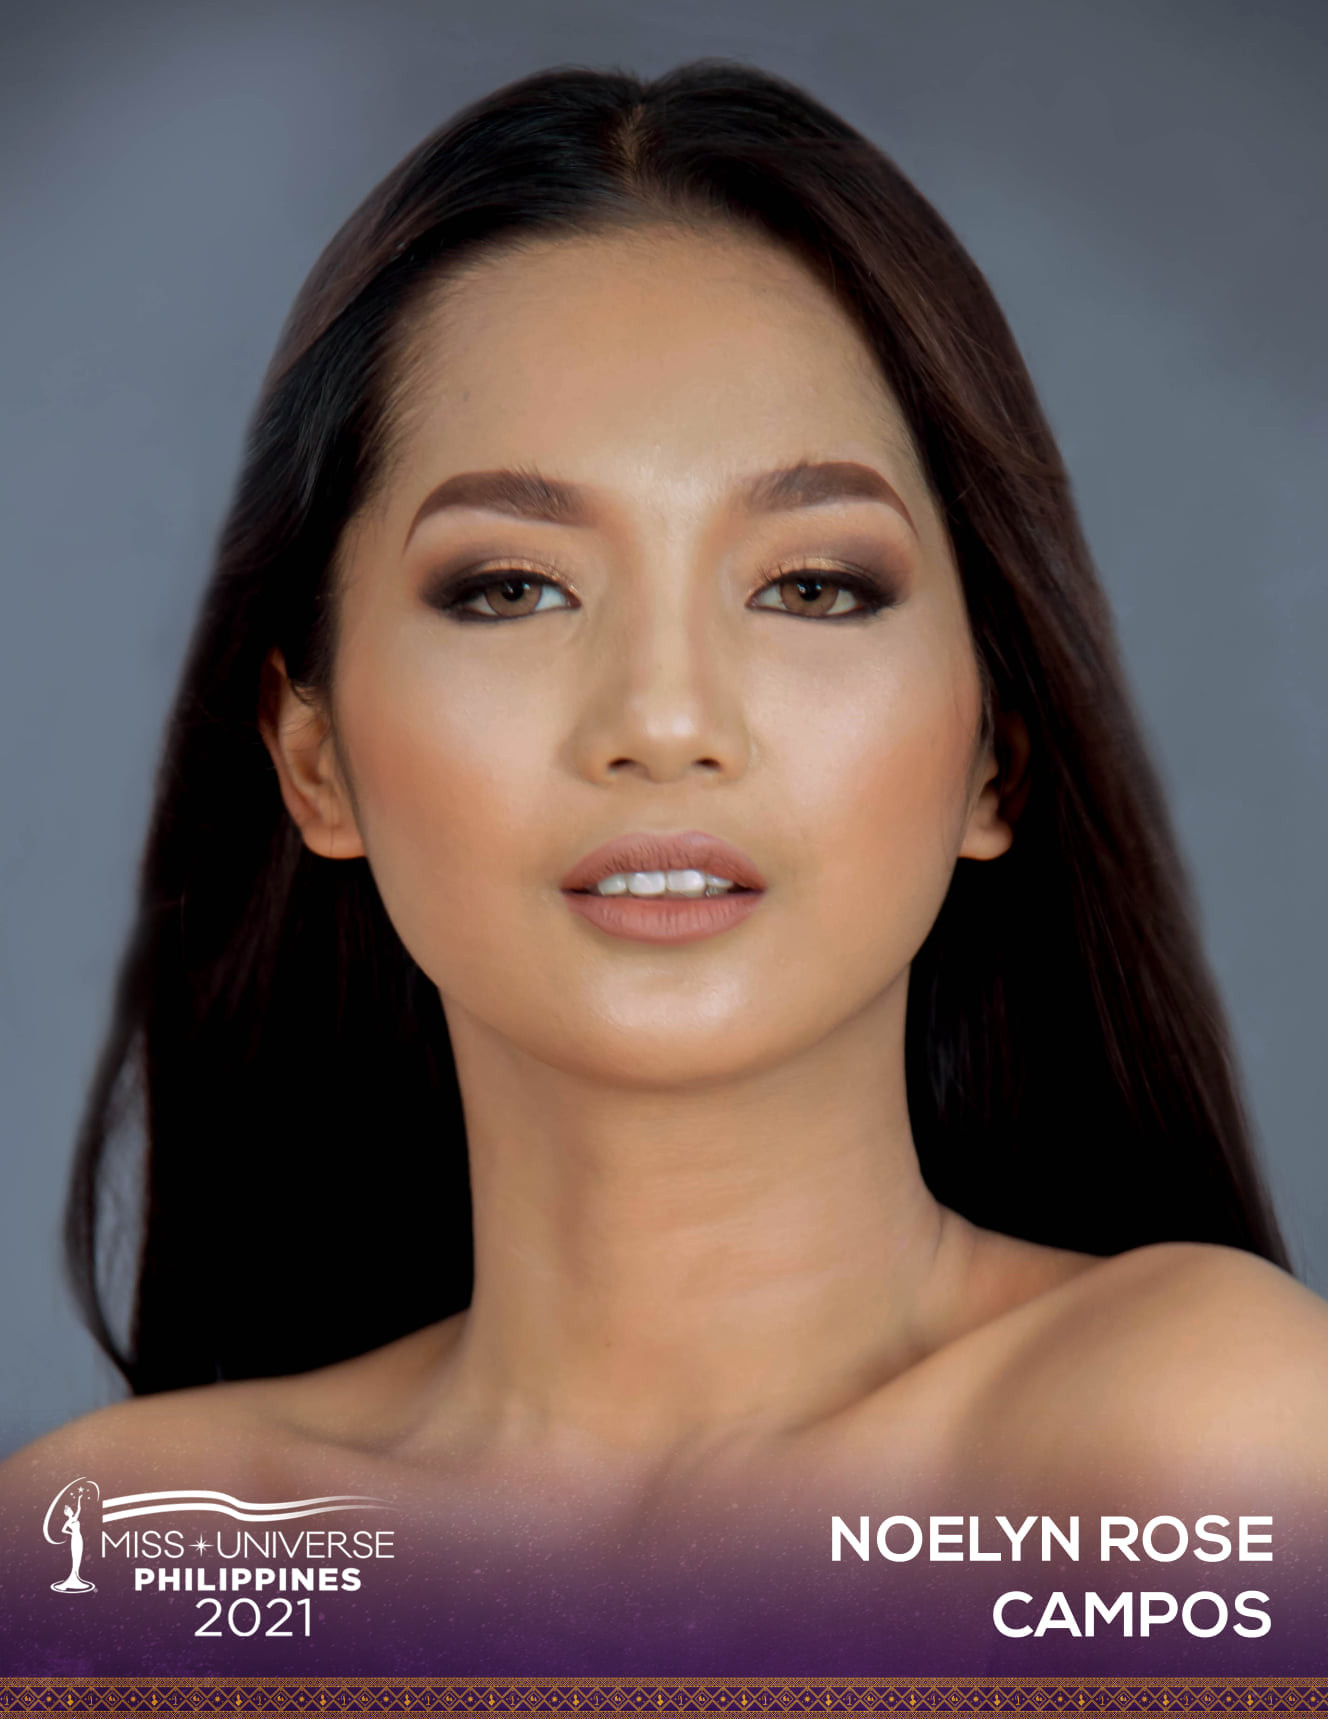 pre-candidatas a miss universe philippines 2021. AlFscP